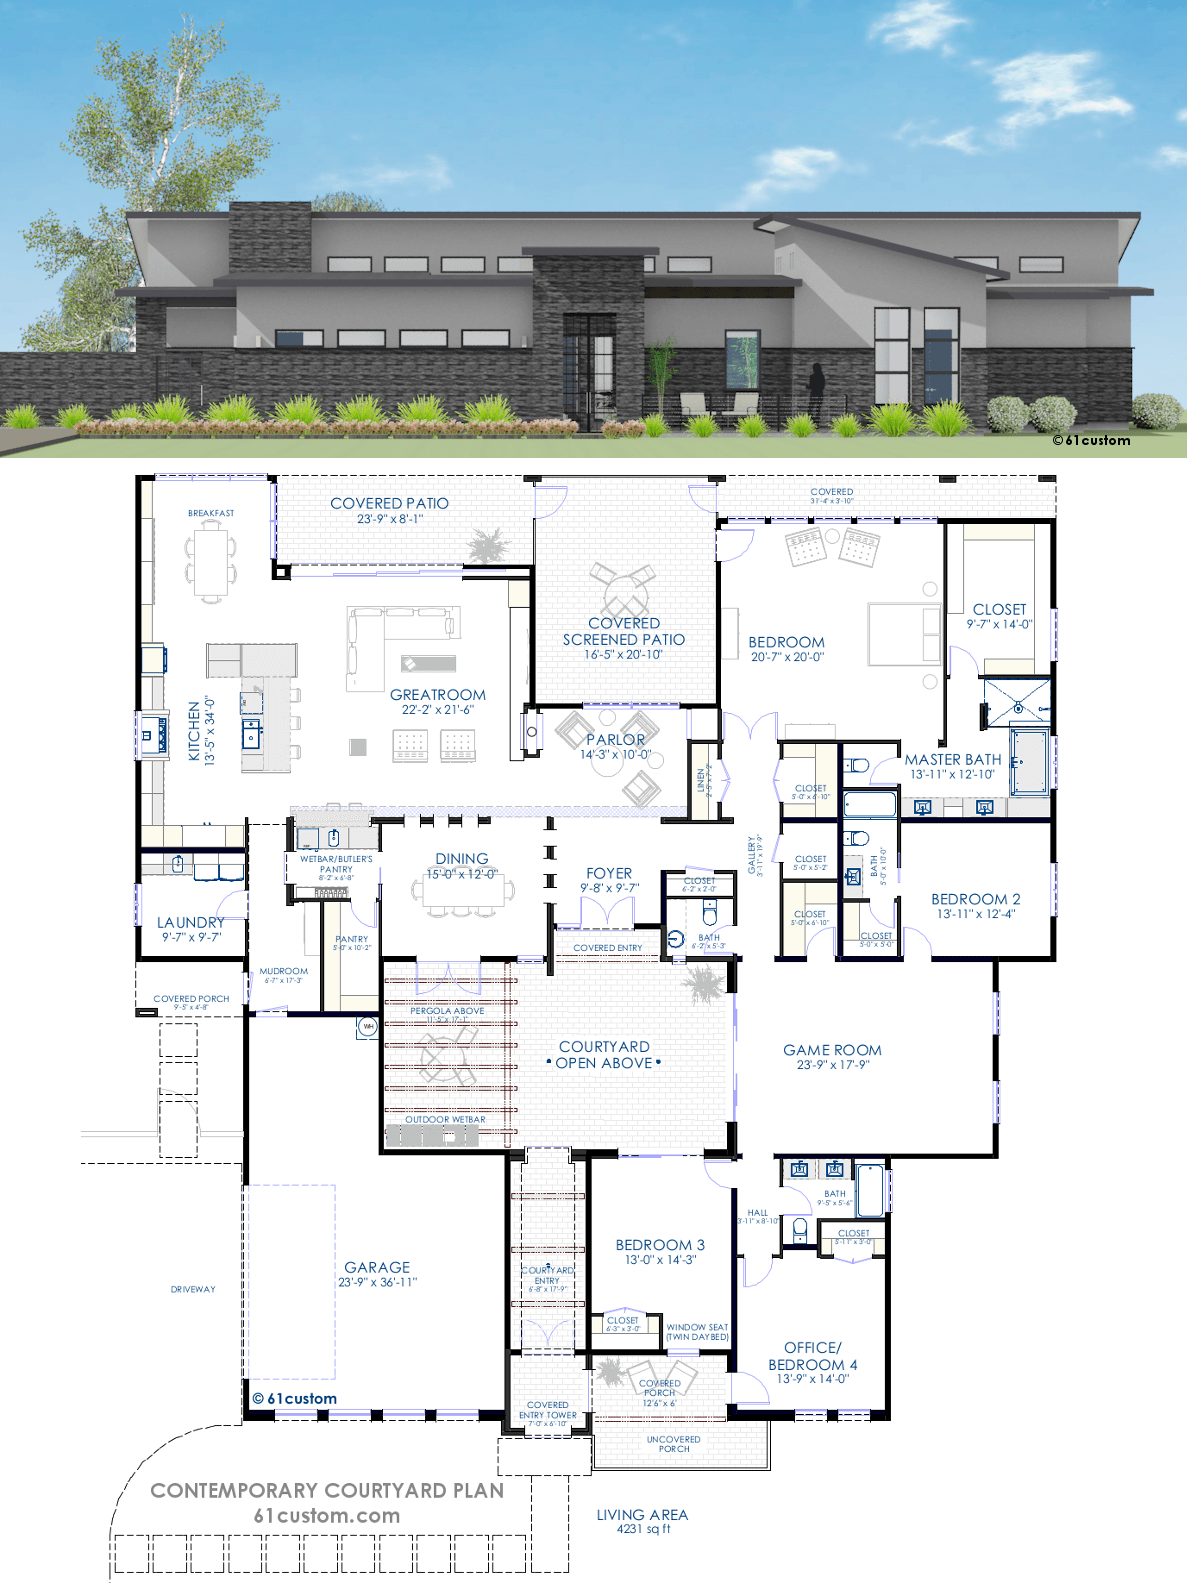 modern home plan contemporary courtyard house plan 61custom modern 14242